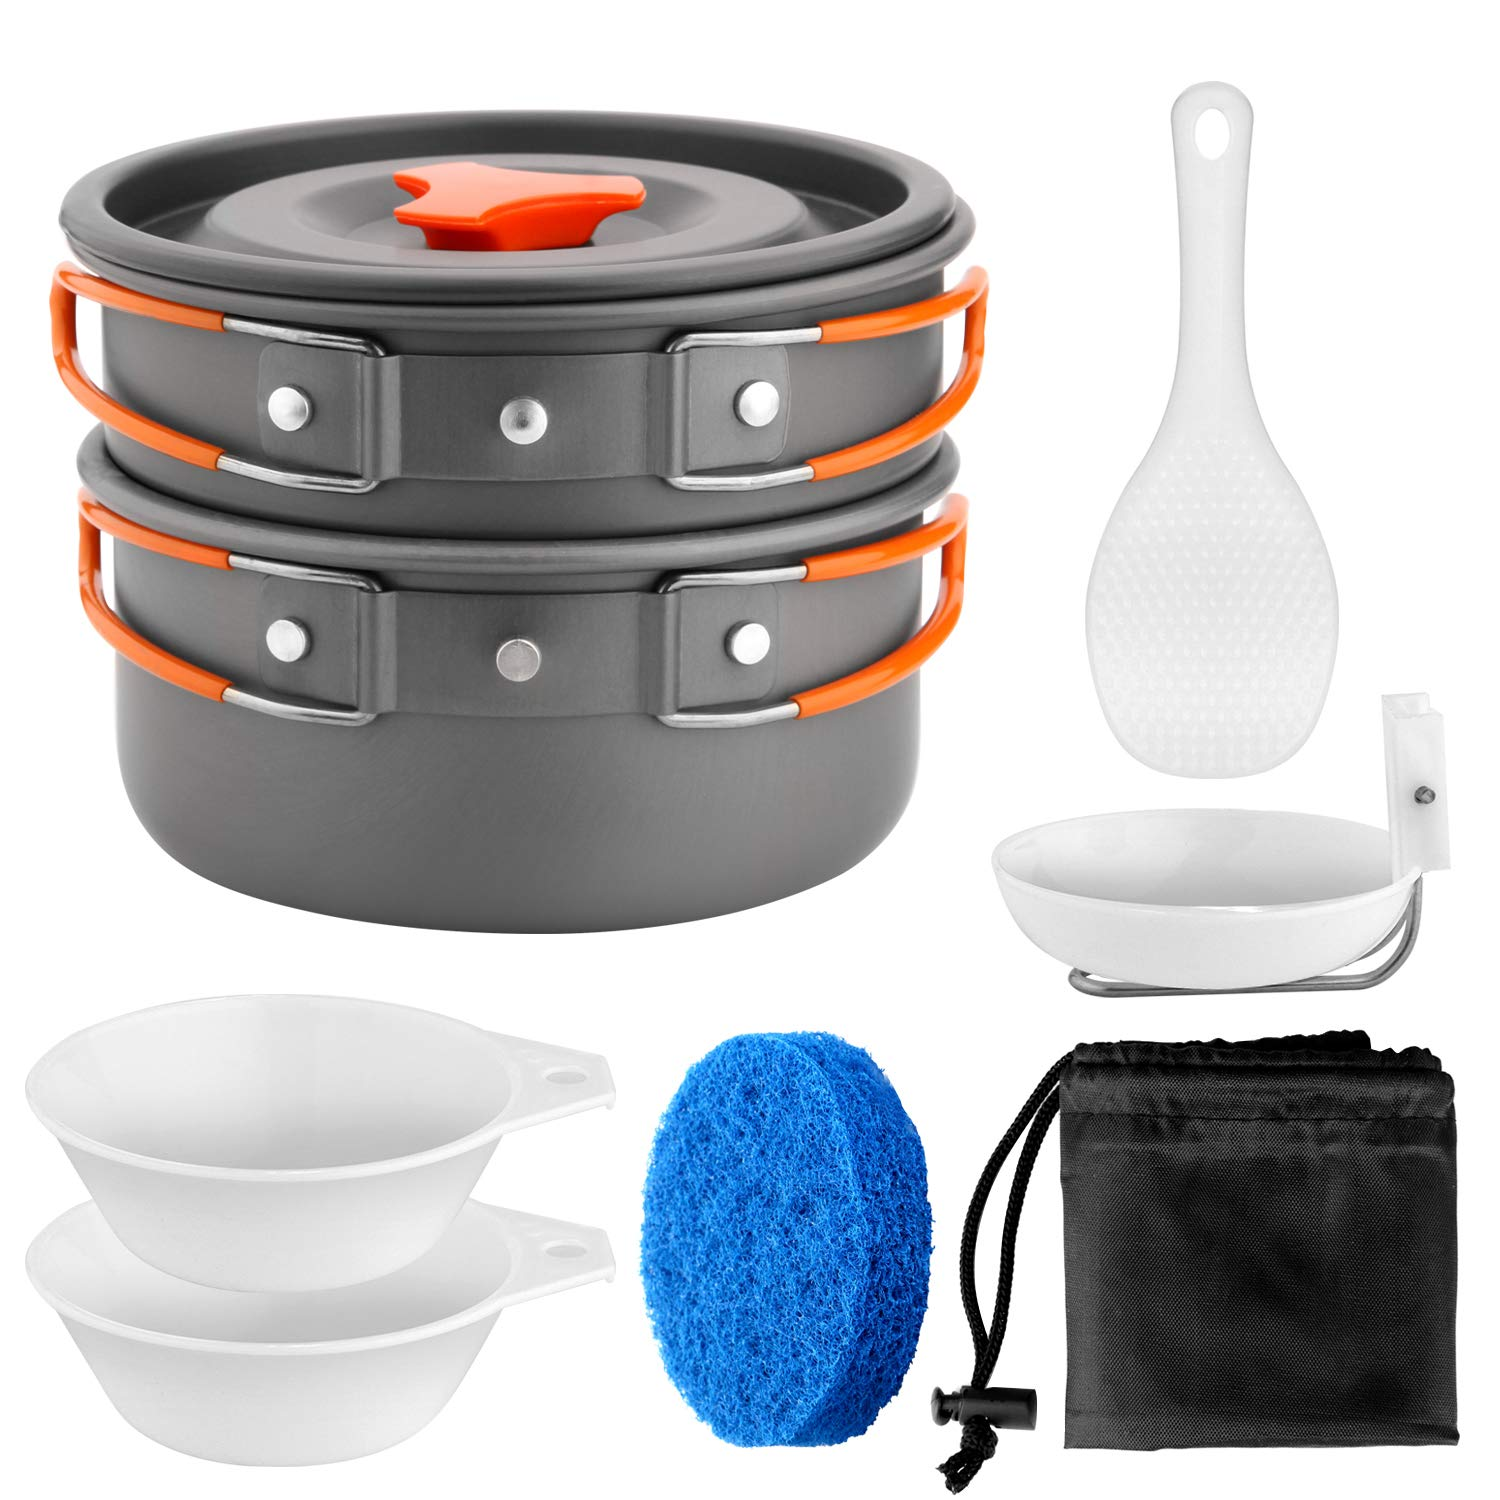 Camping Cookware Set Outdoor Backpacking Gear Hiking Cooking Equipment 8pcs Small Pot Pan Kit Perfect